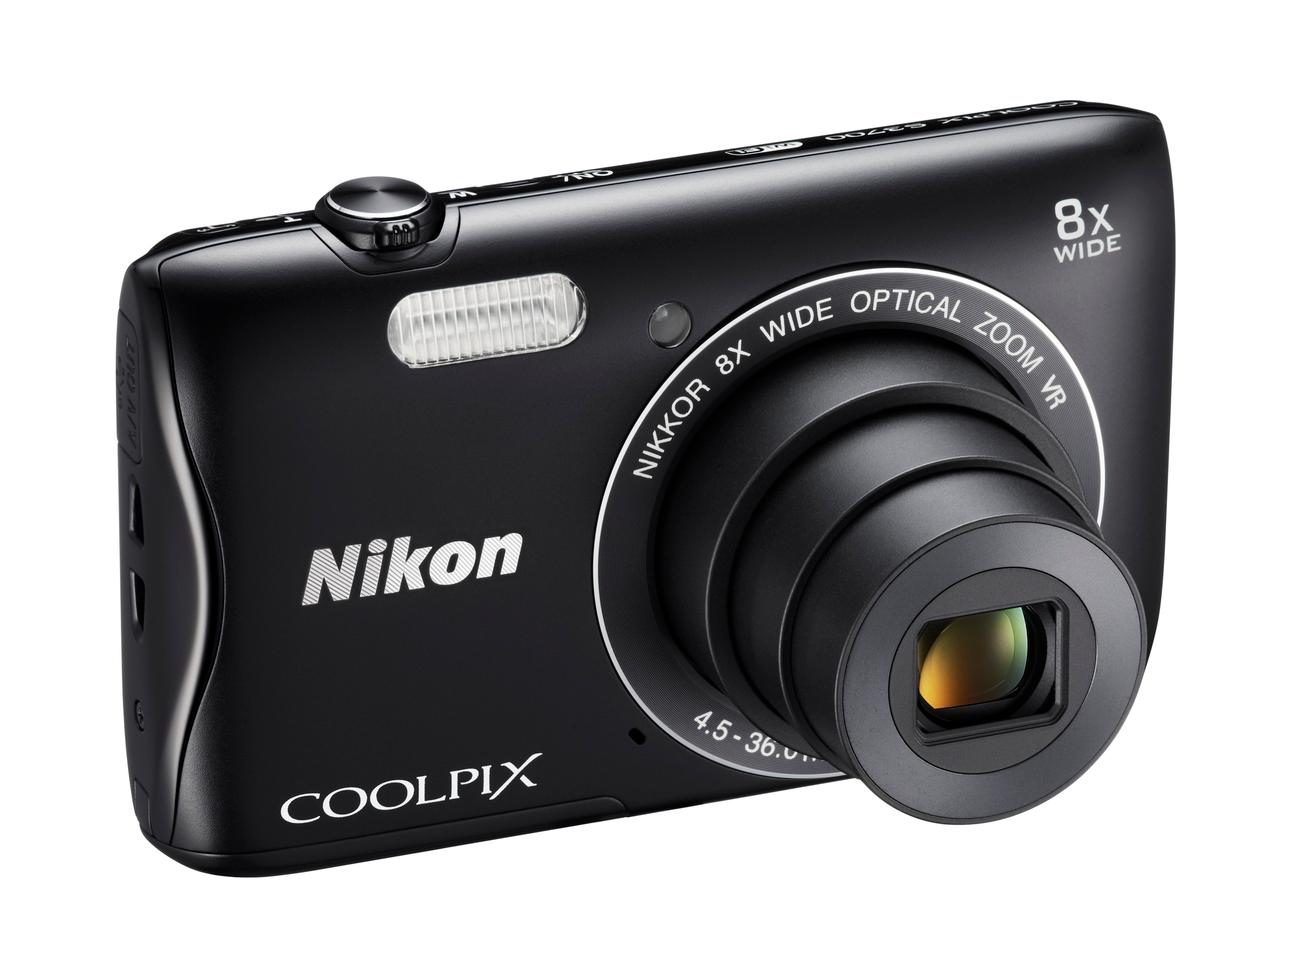 The Nikon Coolpix S3700 will be available later this month for US$140